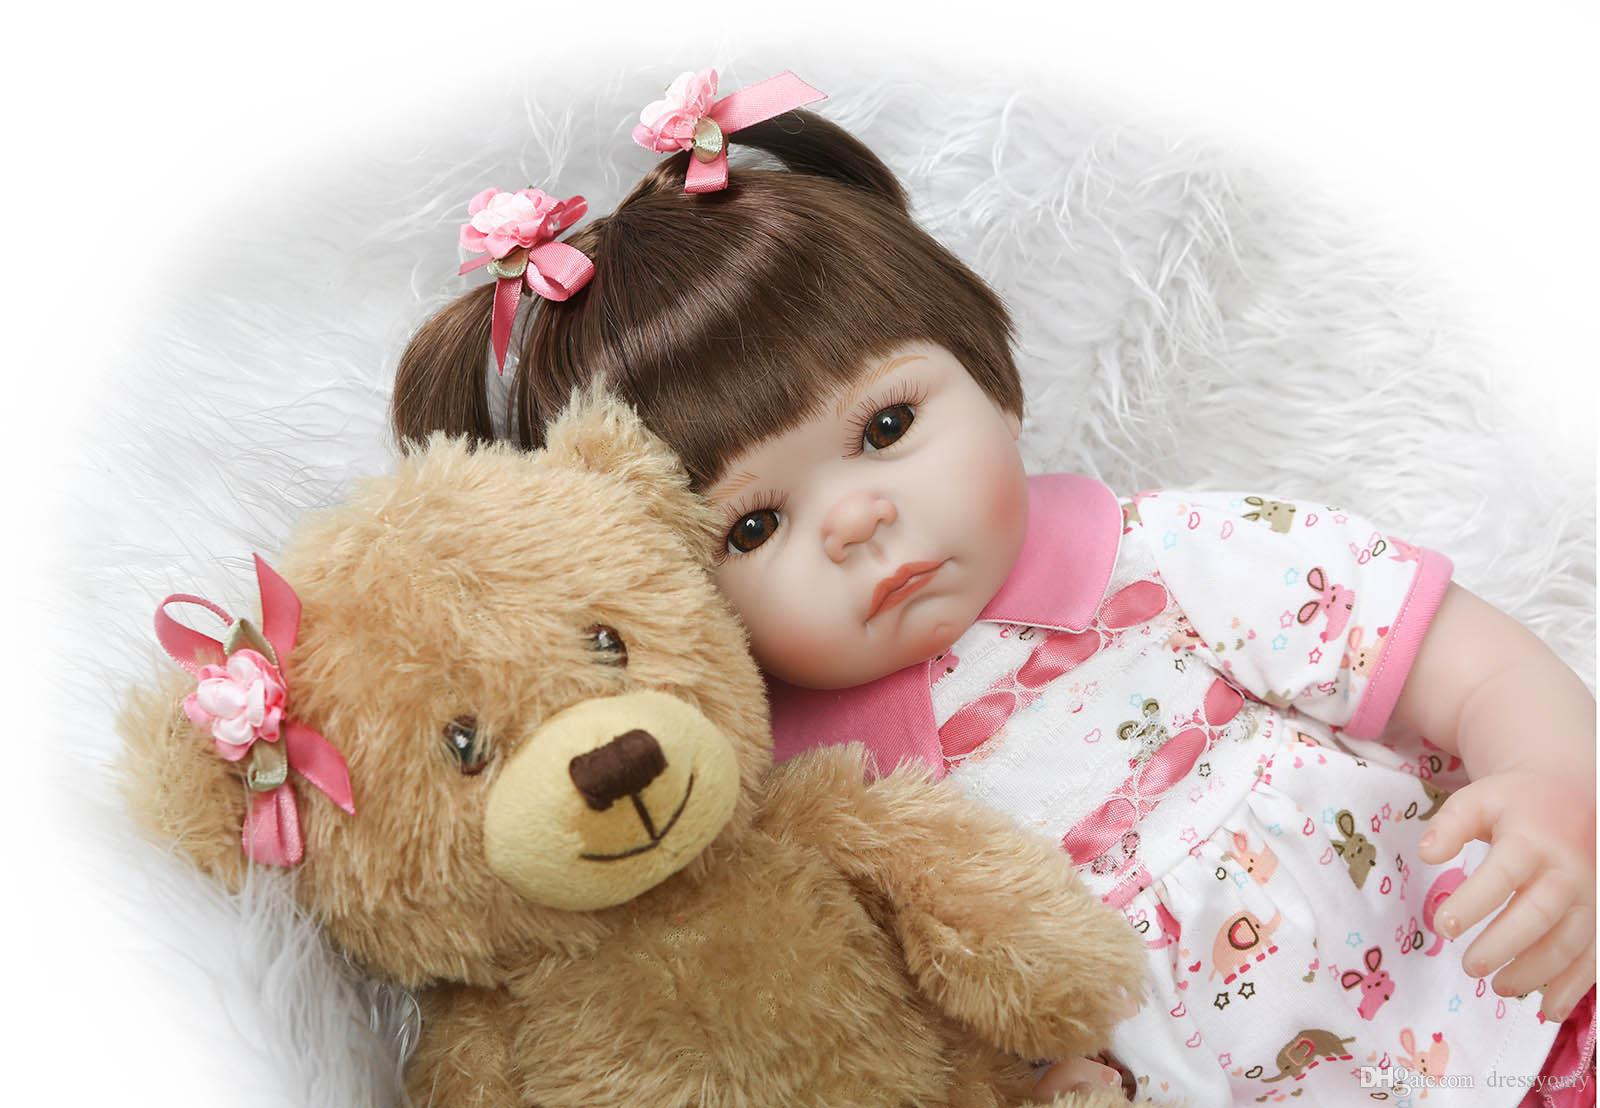 cute baby girls dolls handmade lifelike baby doll 20 inch 50 cm baby